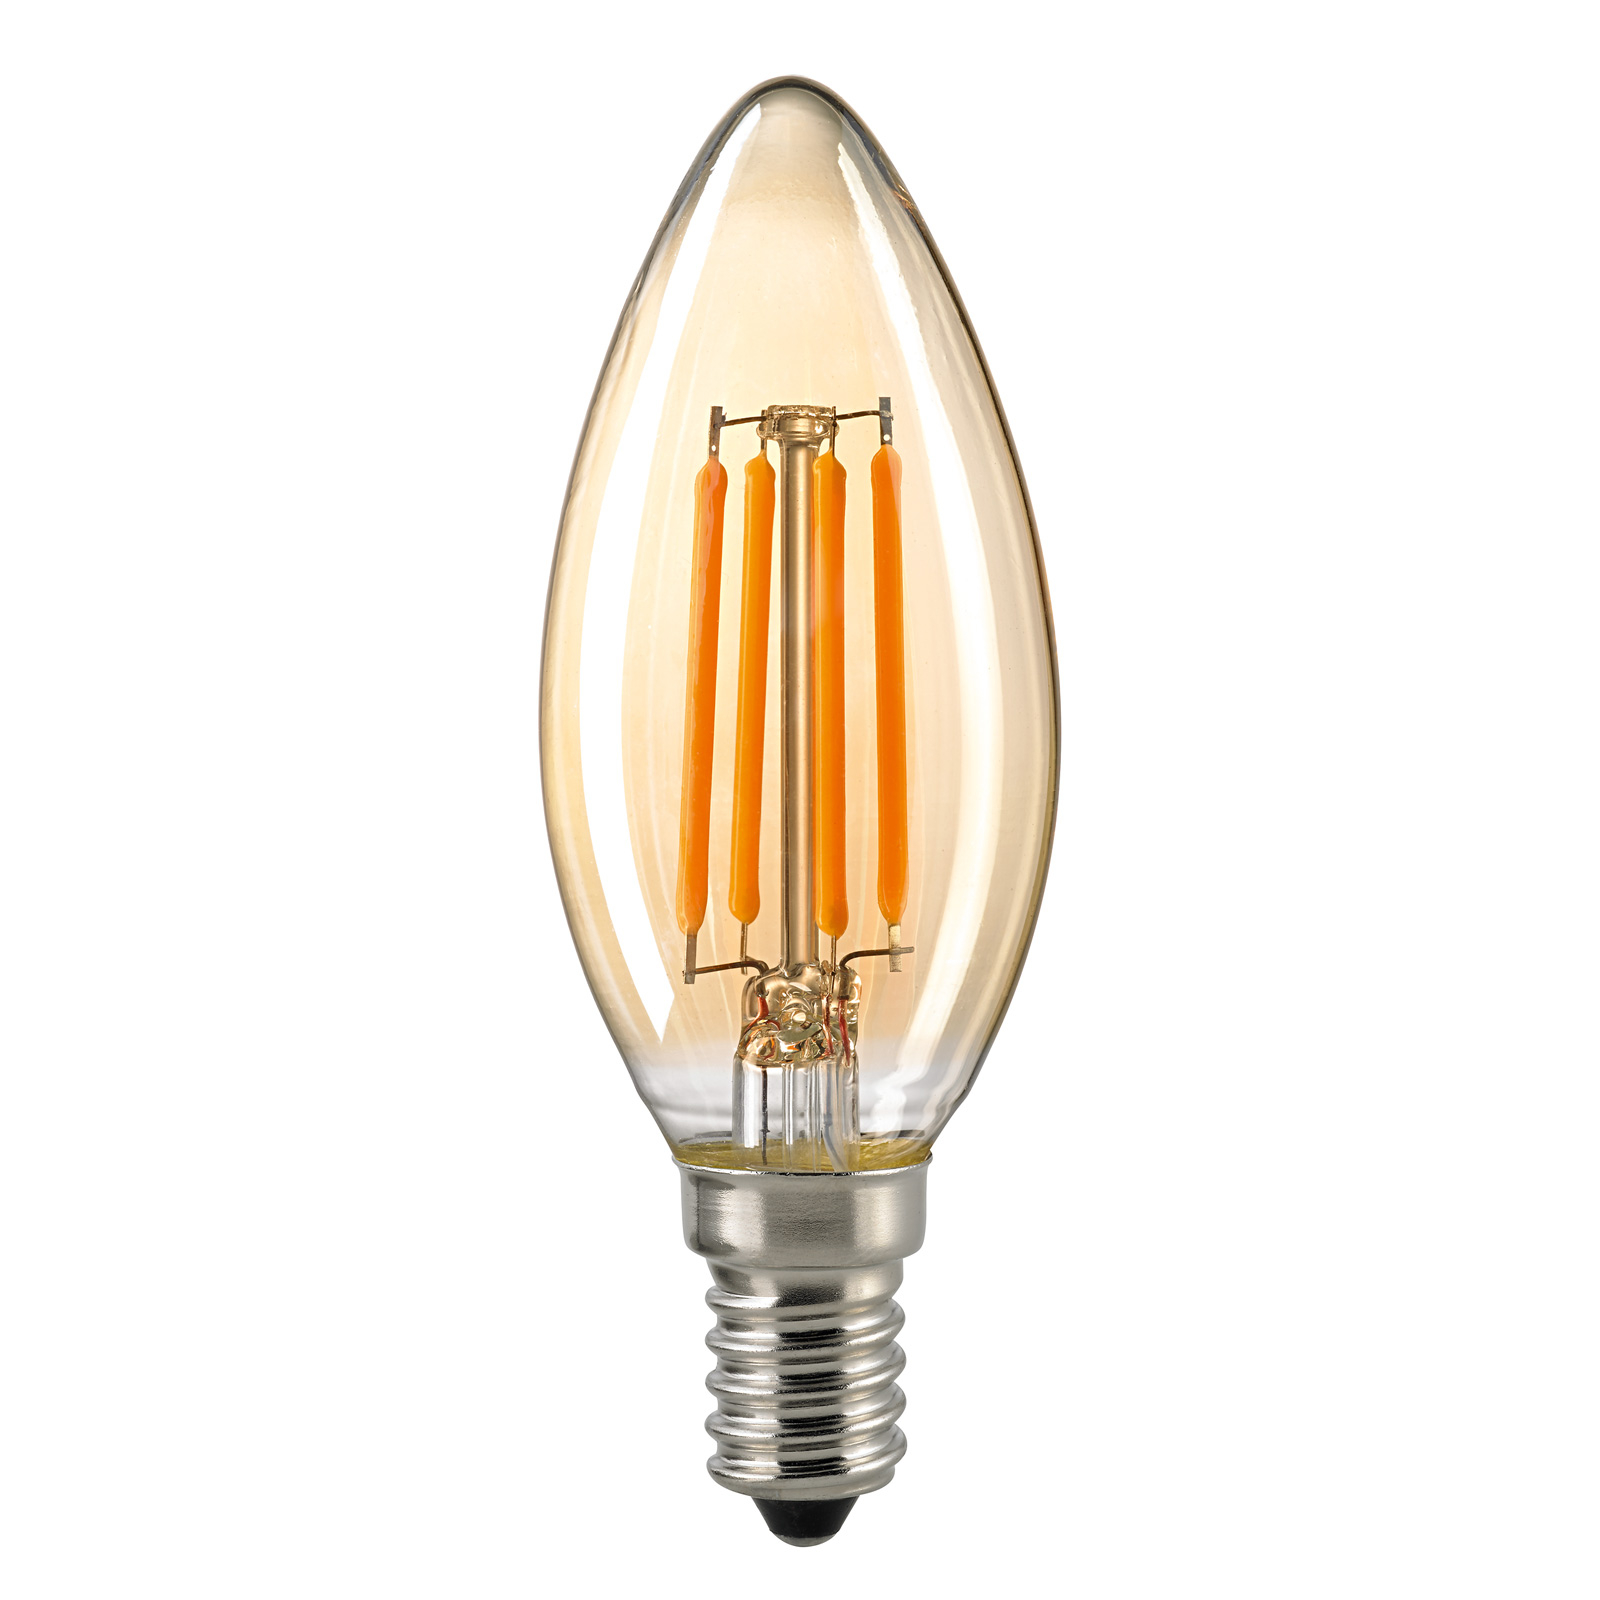 Ampoule flamme LED E14 4,5W filament or dimmable